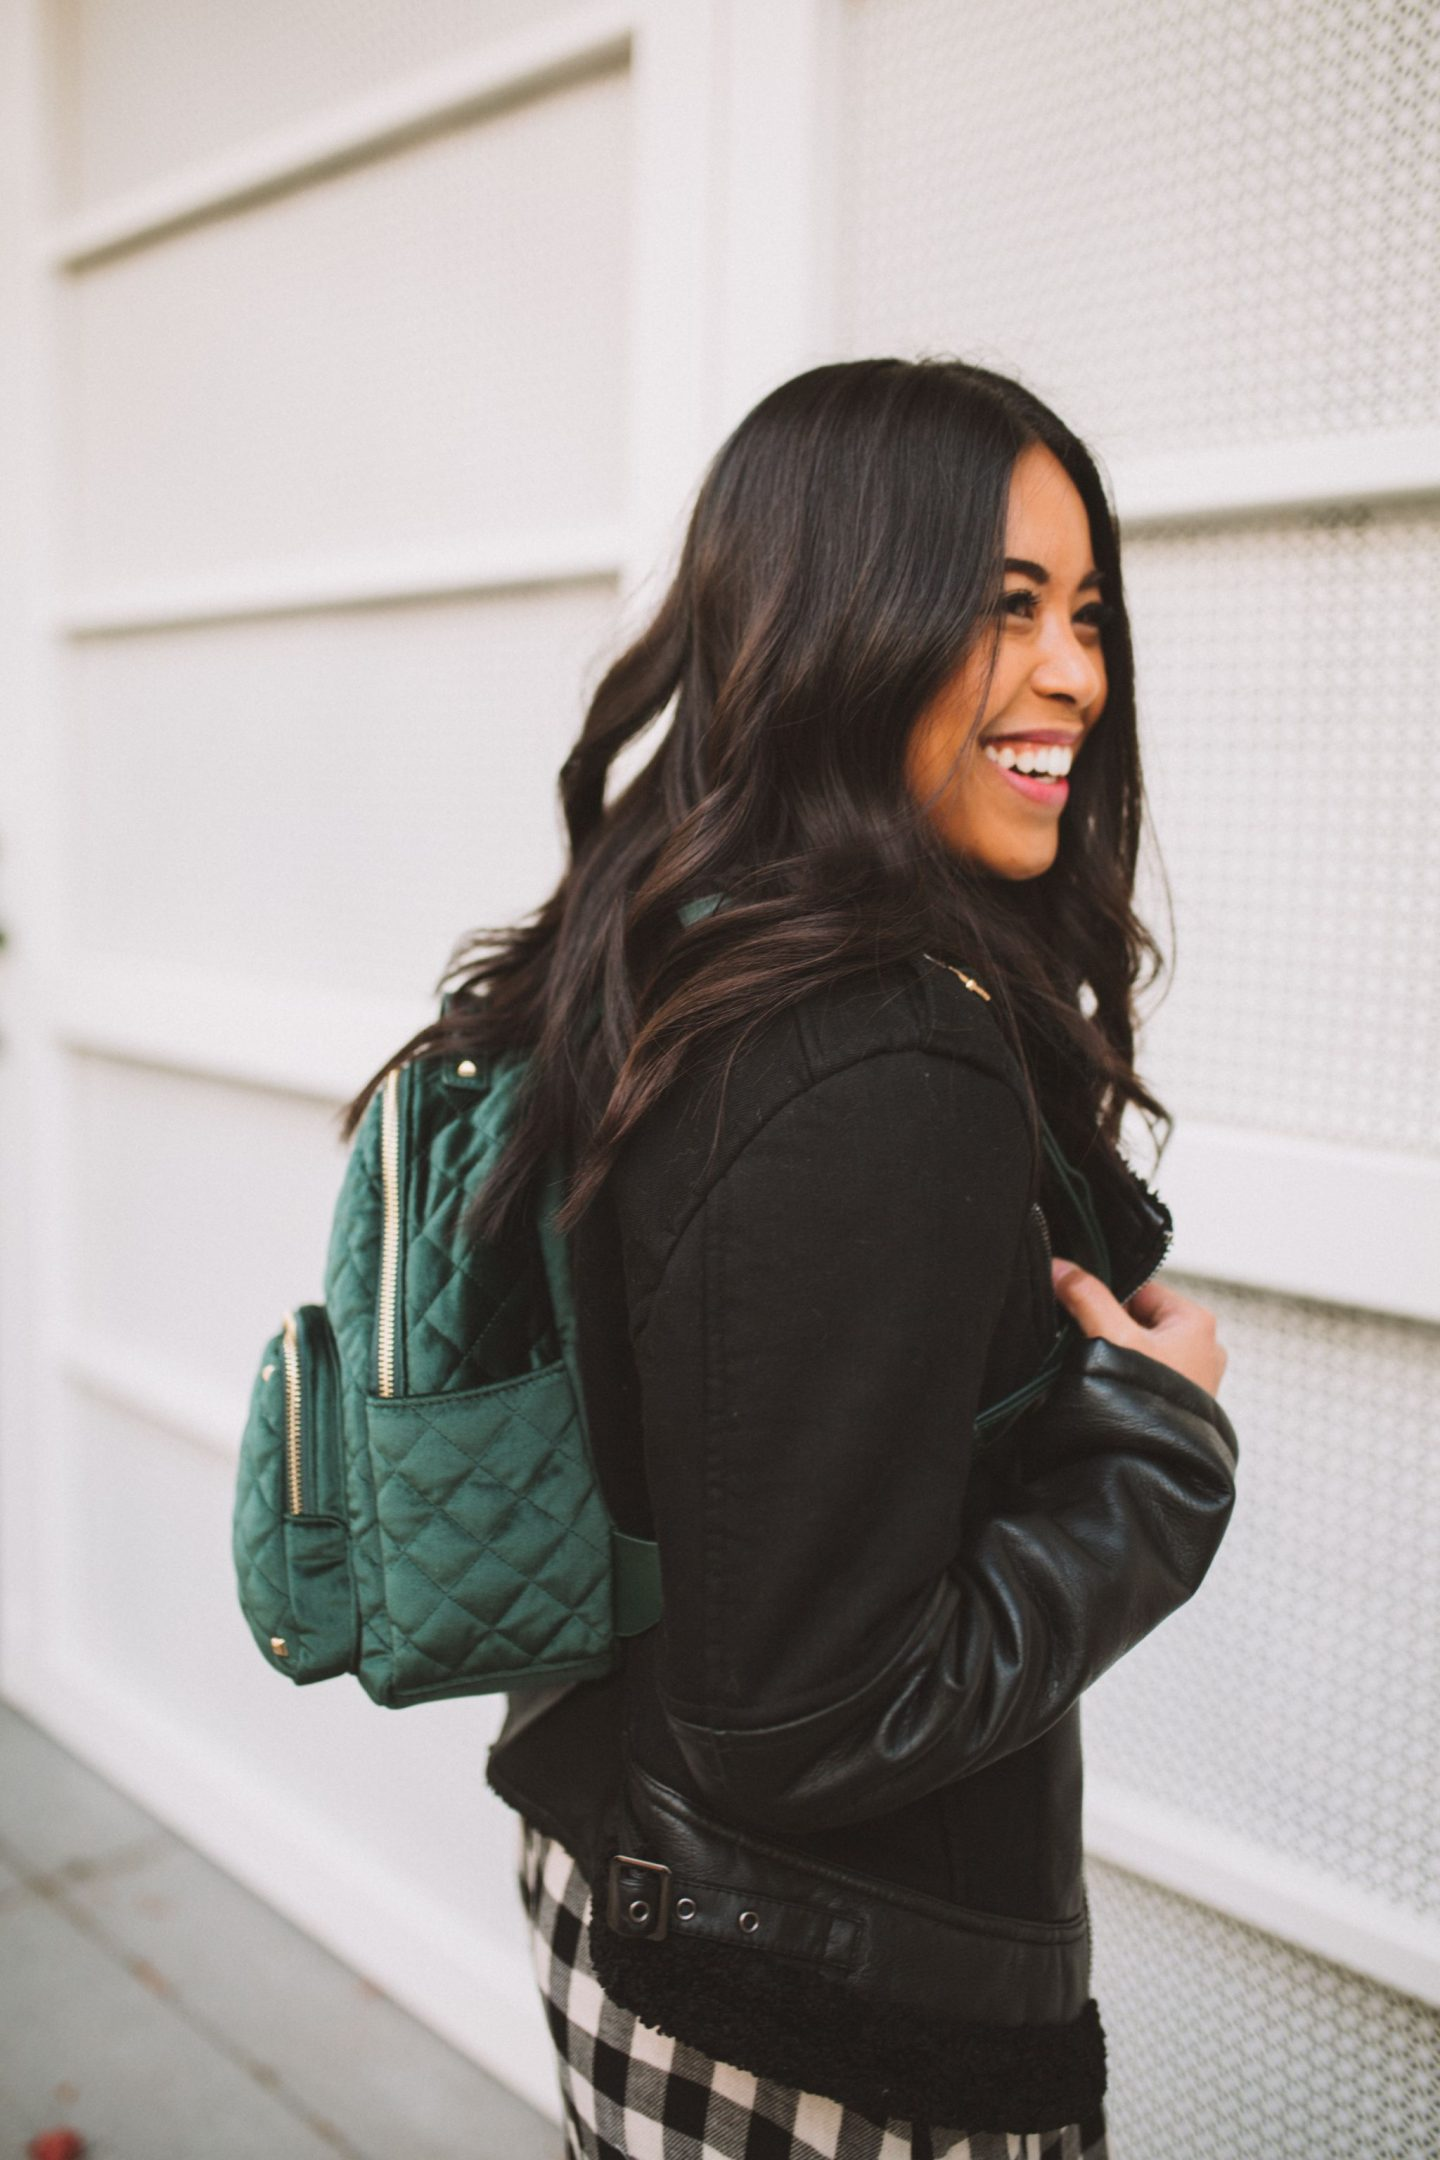 Blank NYC Black Jacket - Nordstrom Rack - MMS Brands - Green Velvet Backpack - Thankful - Thanksgiving - winter fashion